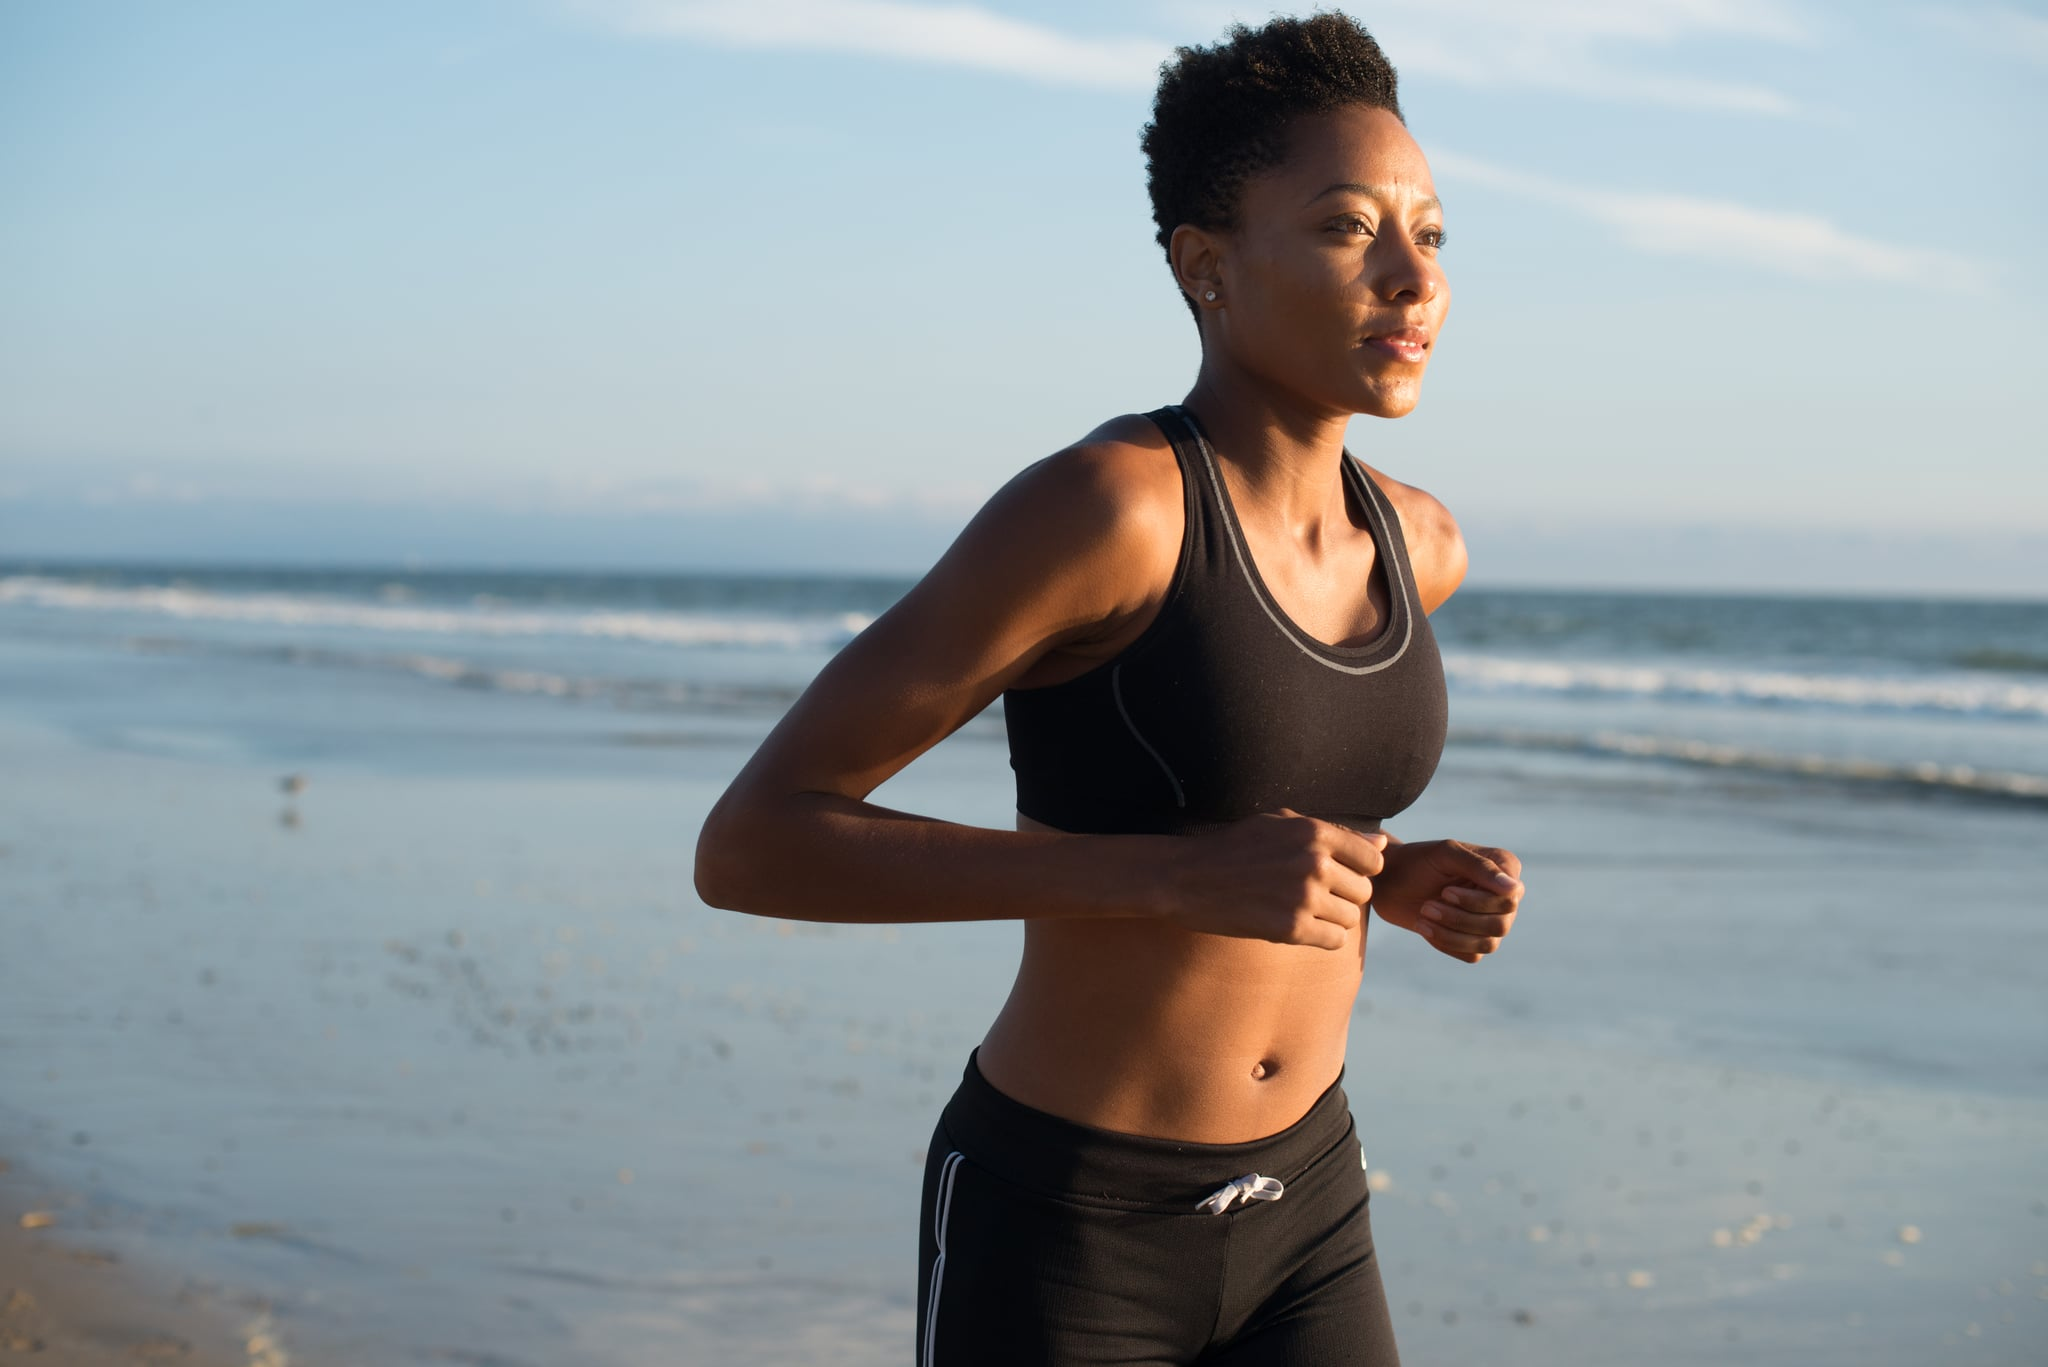 Black woman runs along the beach by the ocean